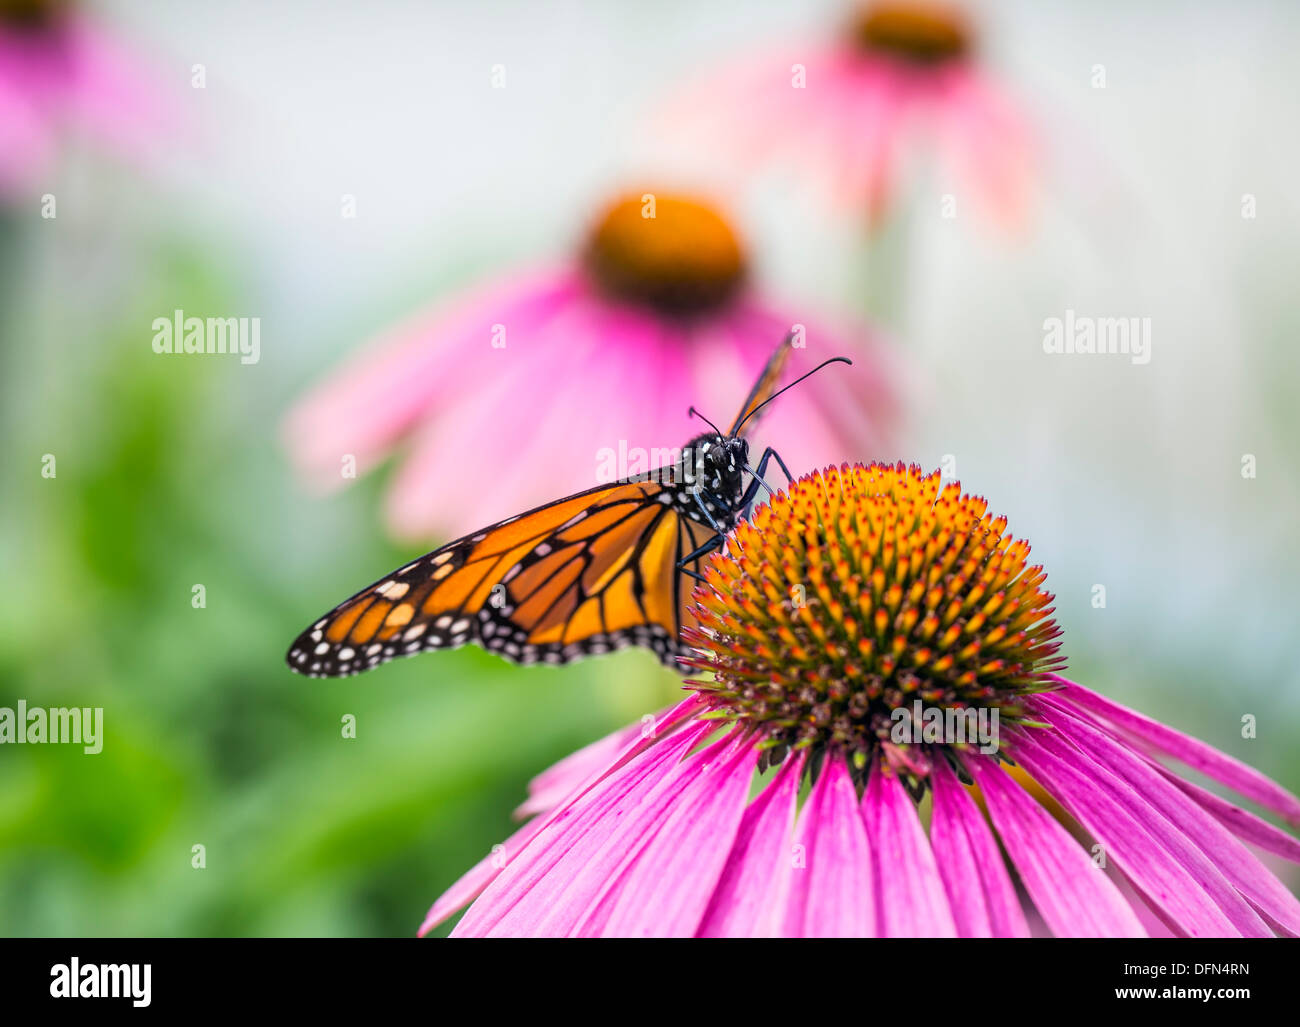 Monarch Butterfly (Danaus plexippus) feeding on Purple Coneflower nectar, Winnipeg, Manitoba, Canada - Stock Image